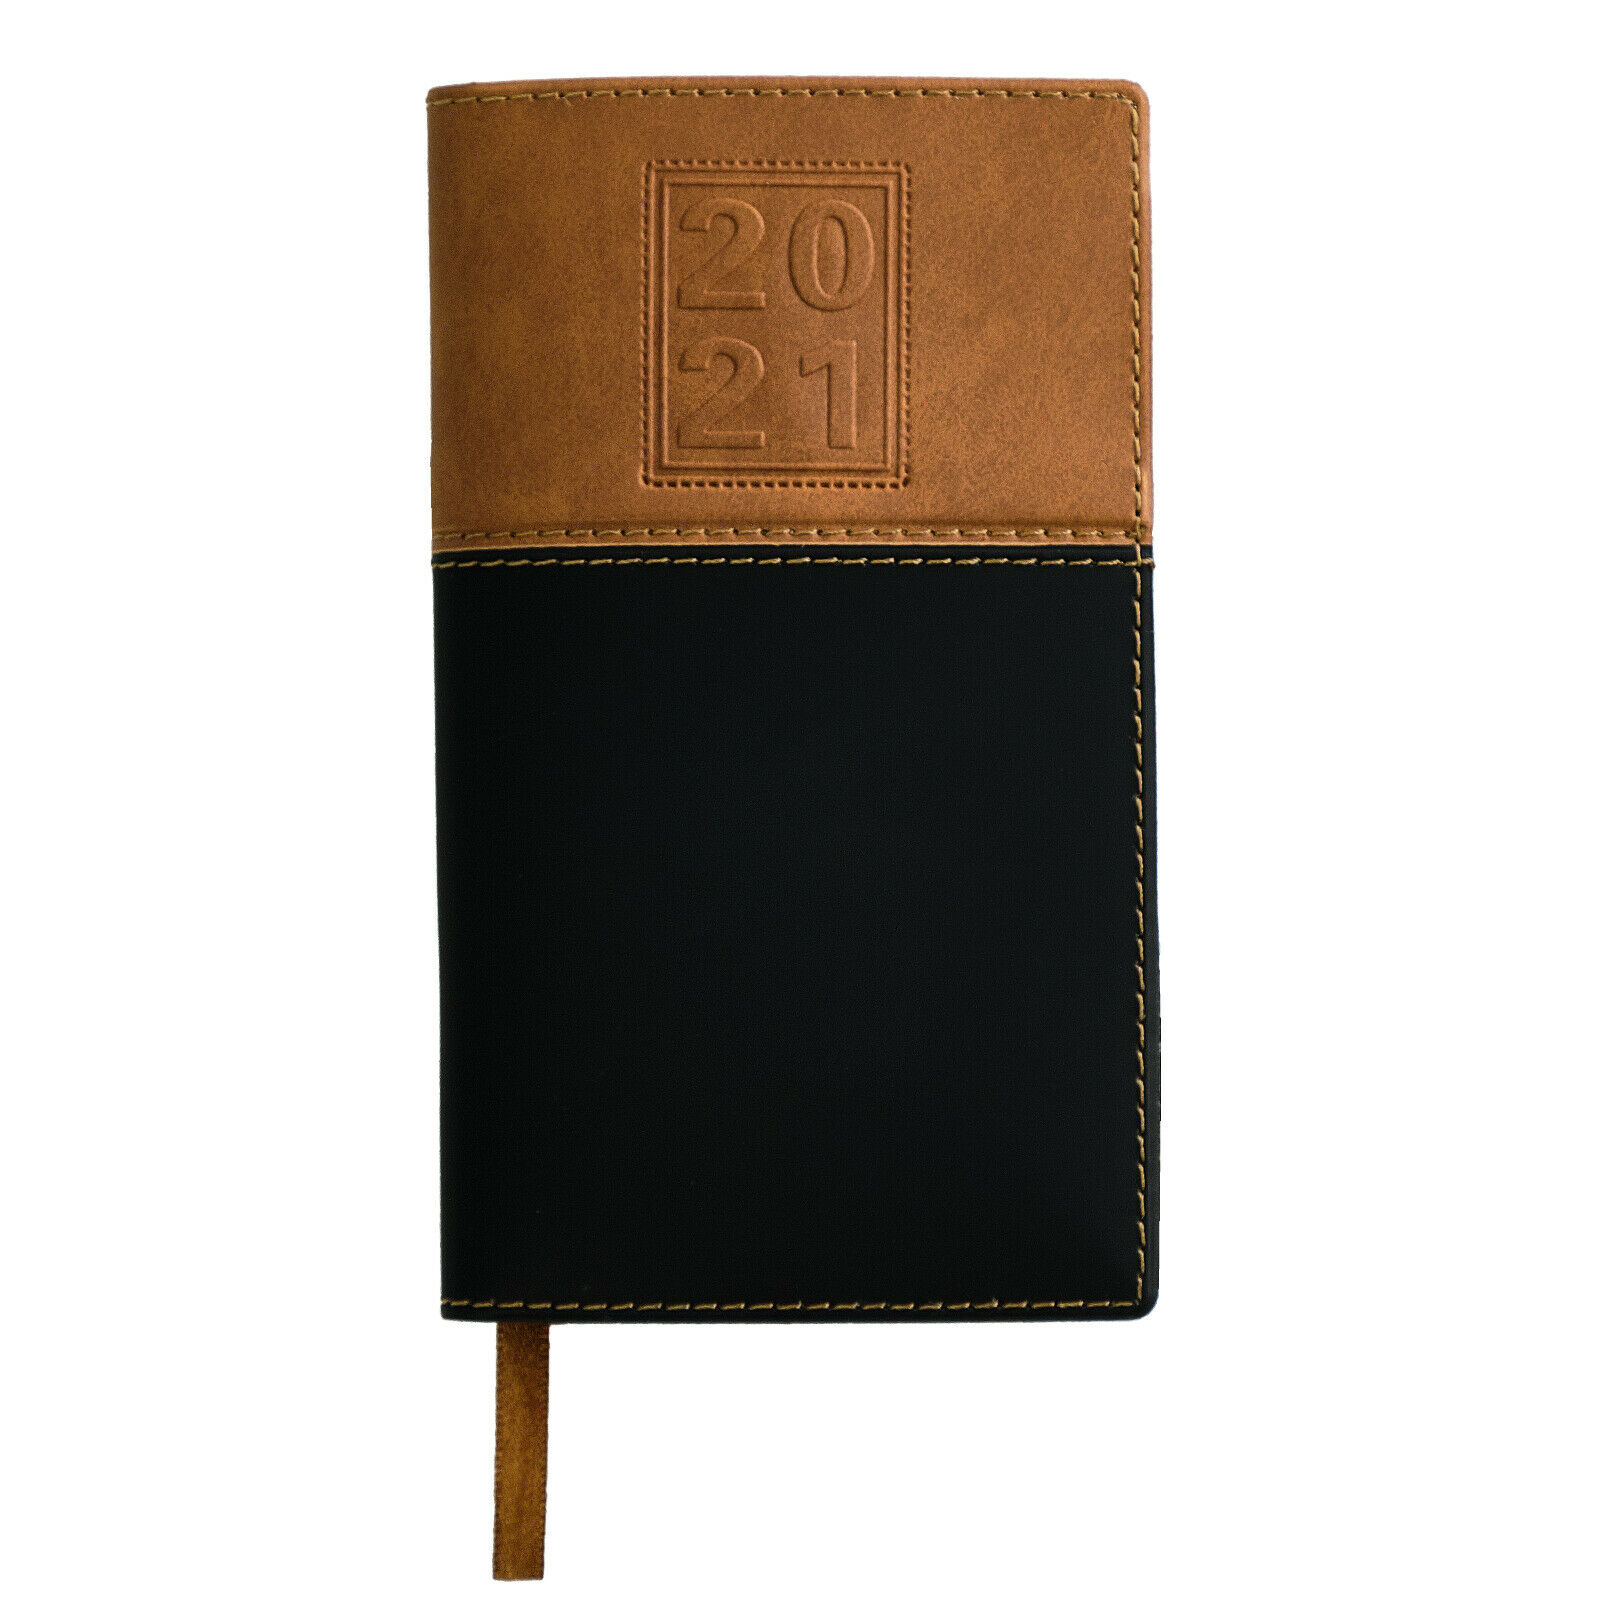 2021 Weekly Pocket Planner/Pocket Calendar - 14 Months (Nov 2020 - Dec 2021) pertaining to 2021-2021: Two-Year Monthly Pocket